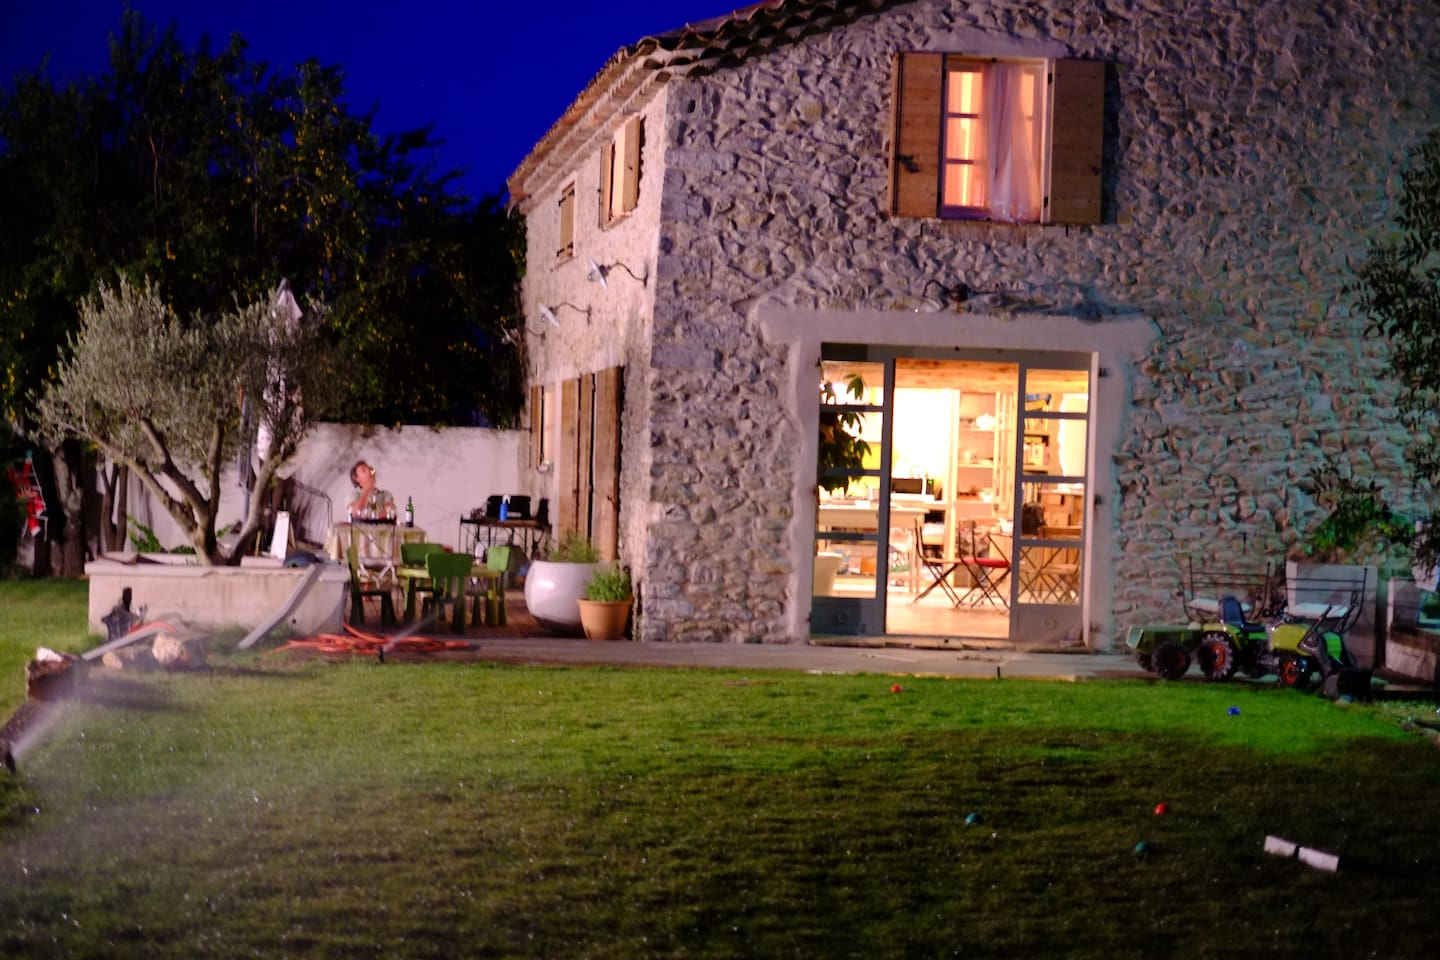 Stylish, spacious renovated barn with large gardens, terrace, pool and village views